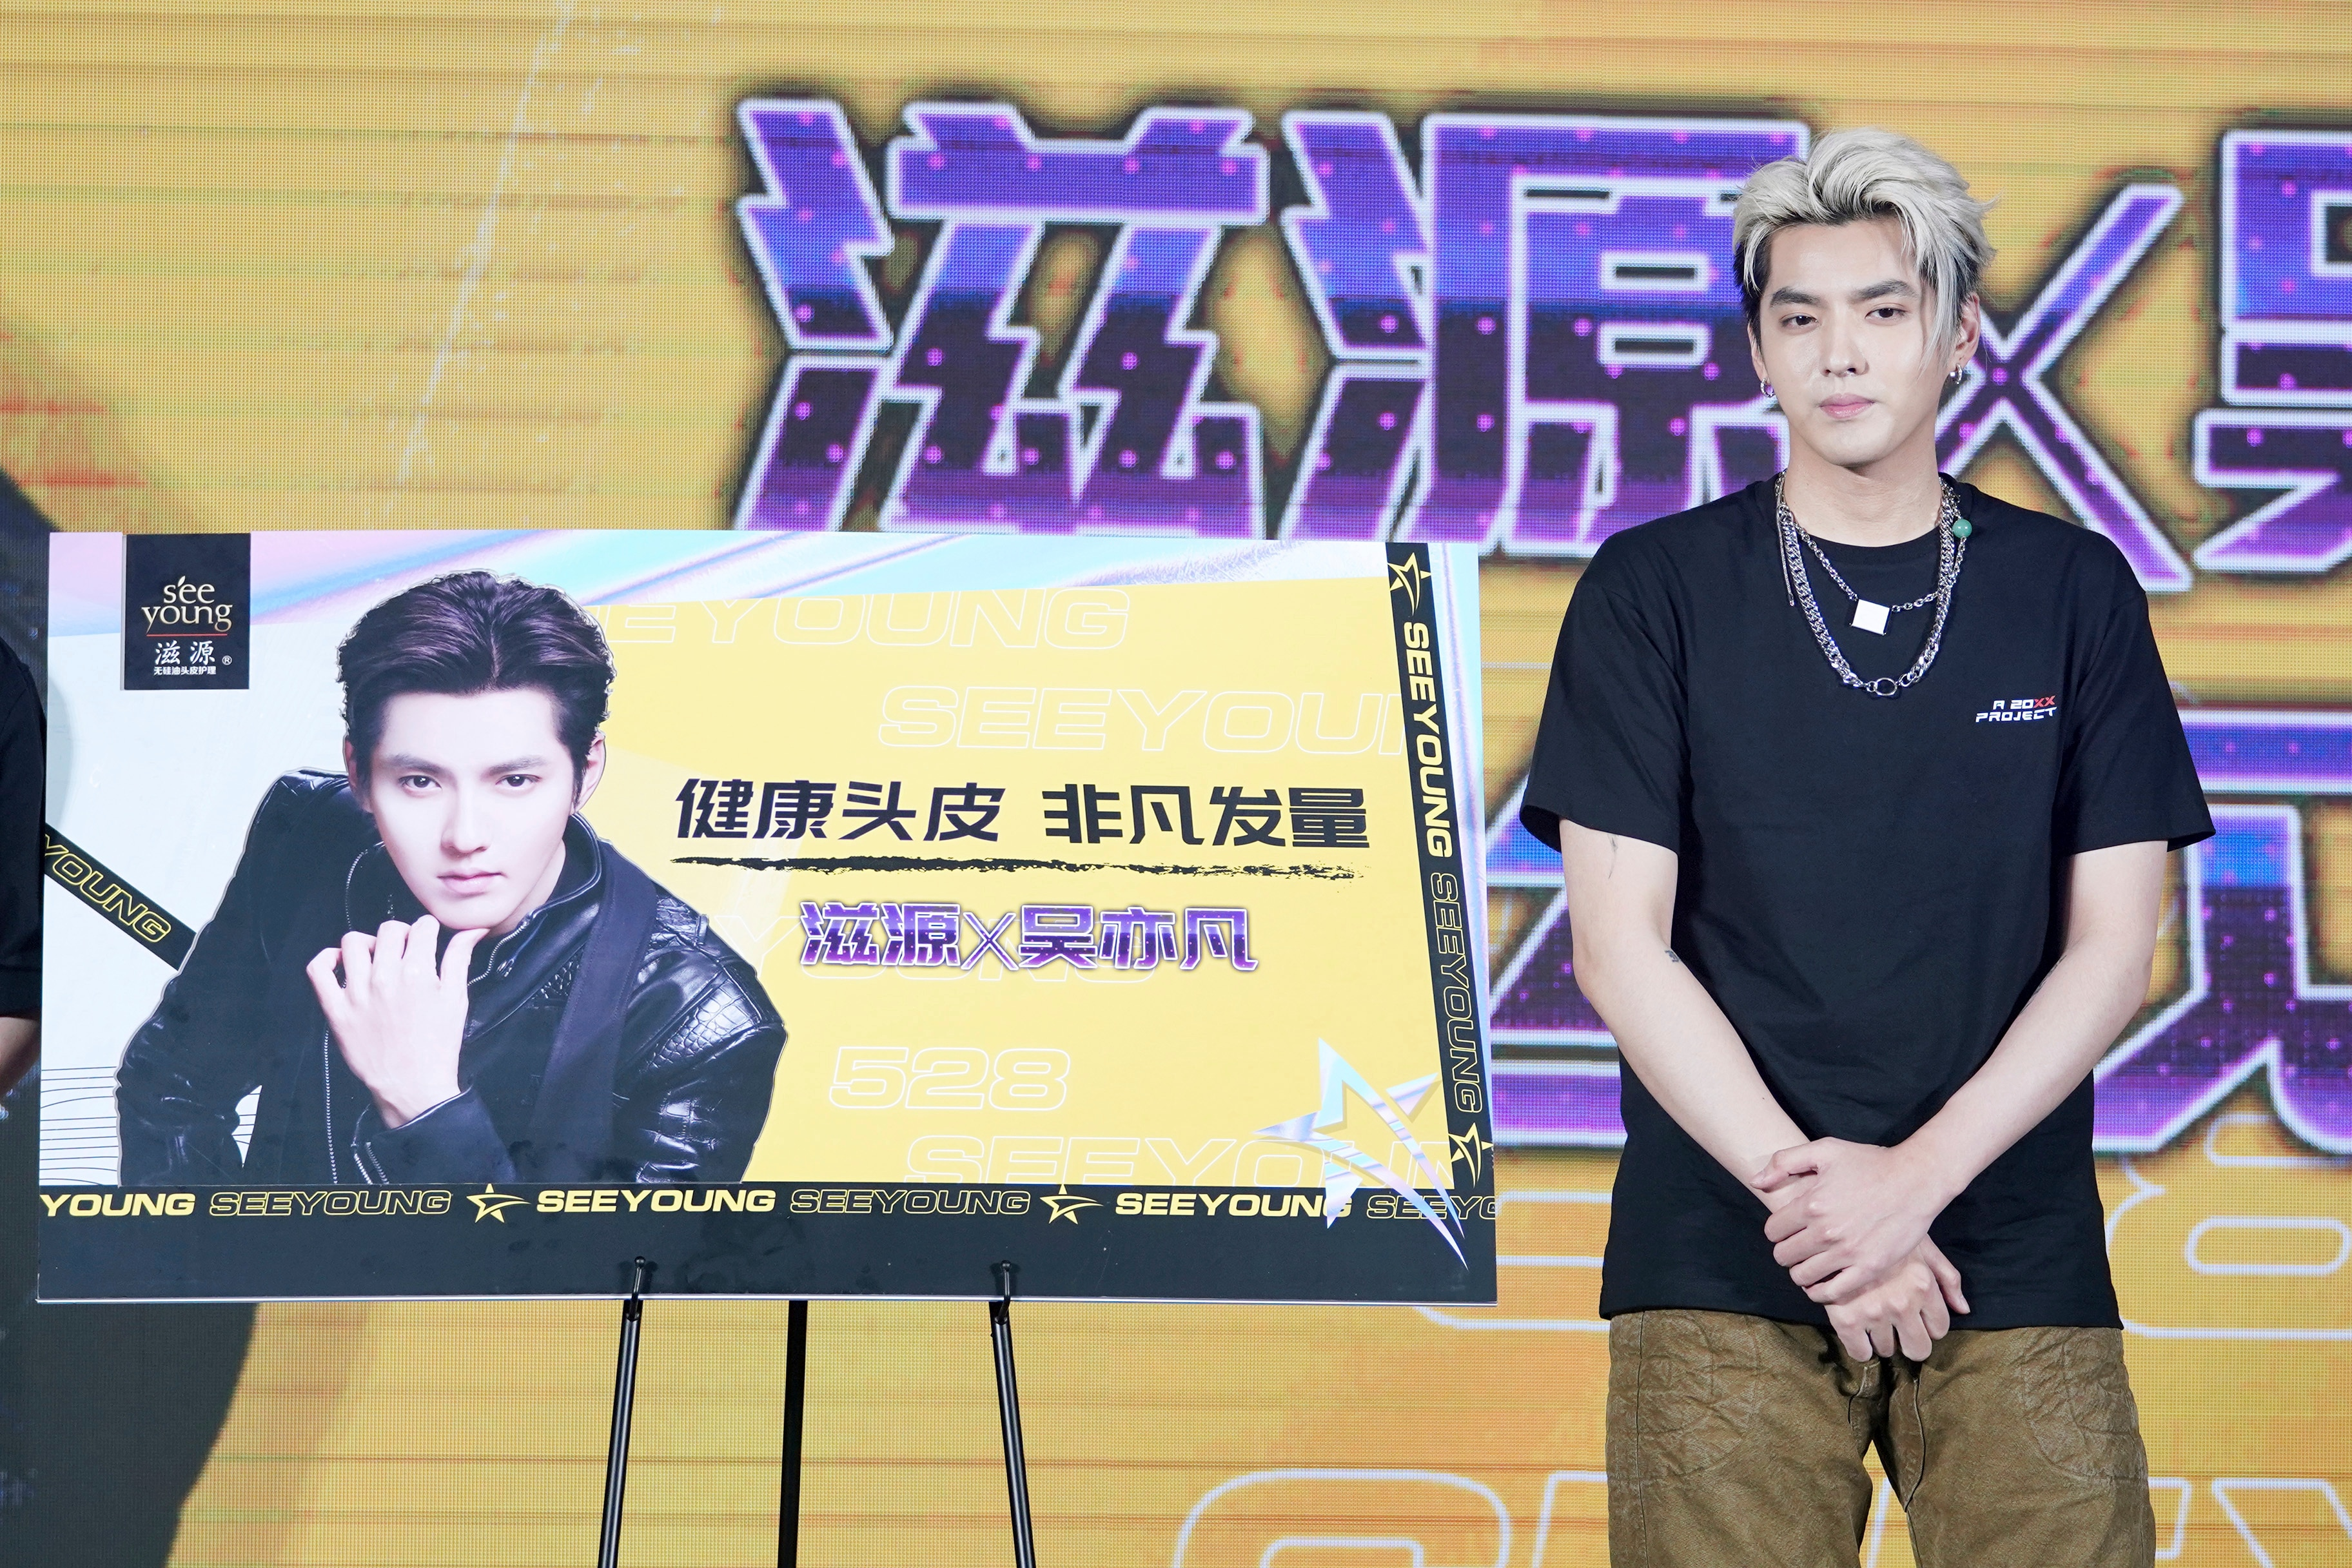 Kris Wu at a promotional event in Shanghai, China, 30 May 2021.